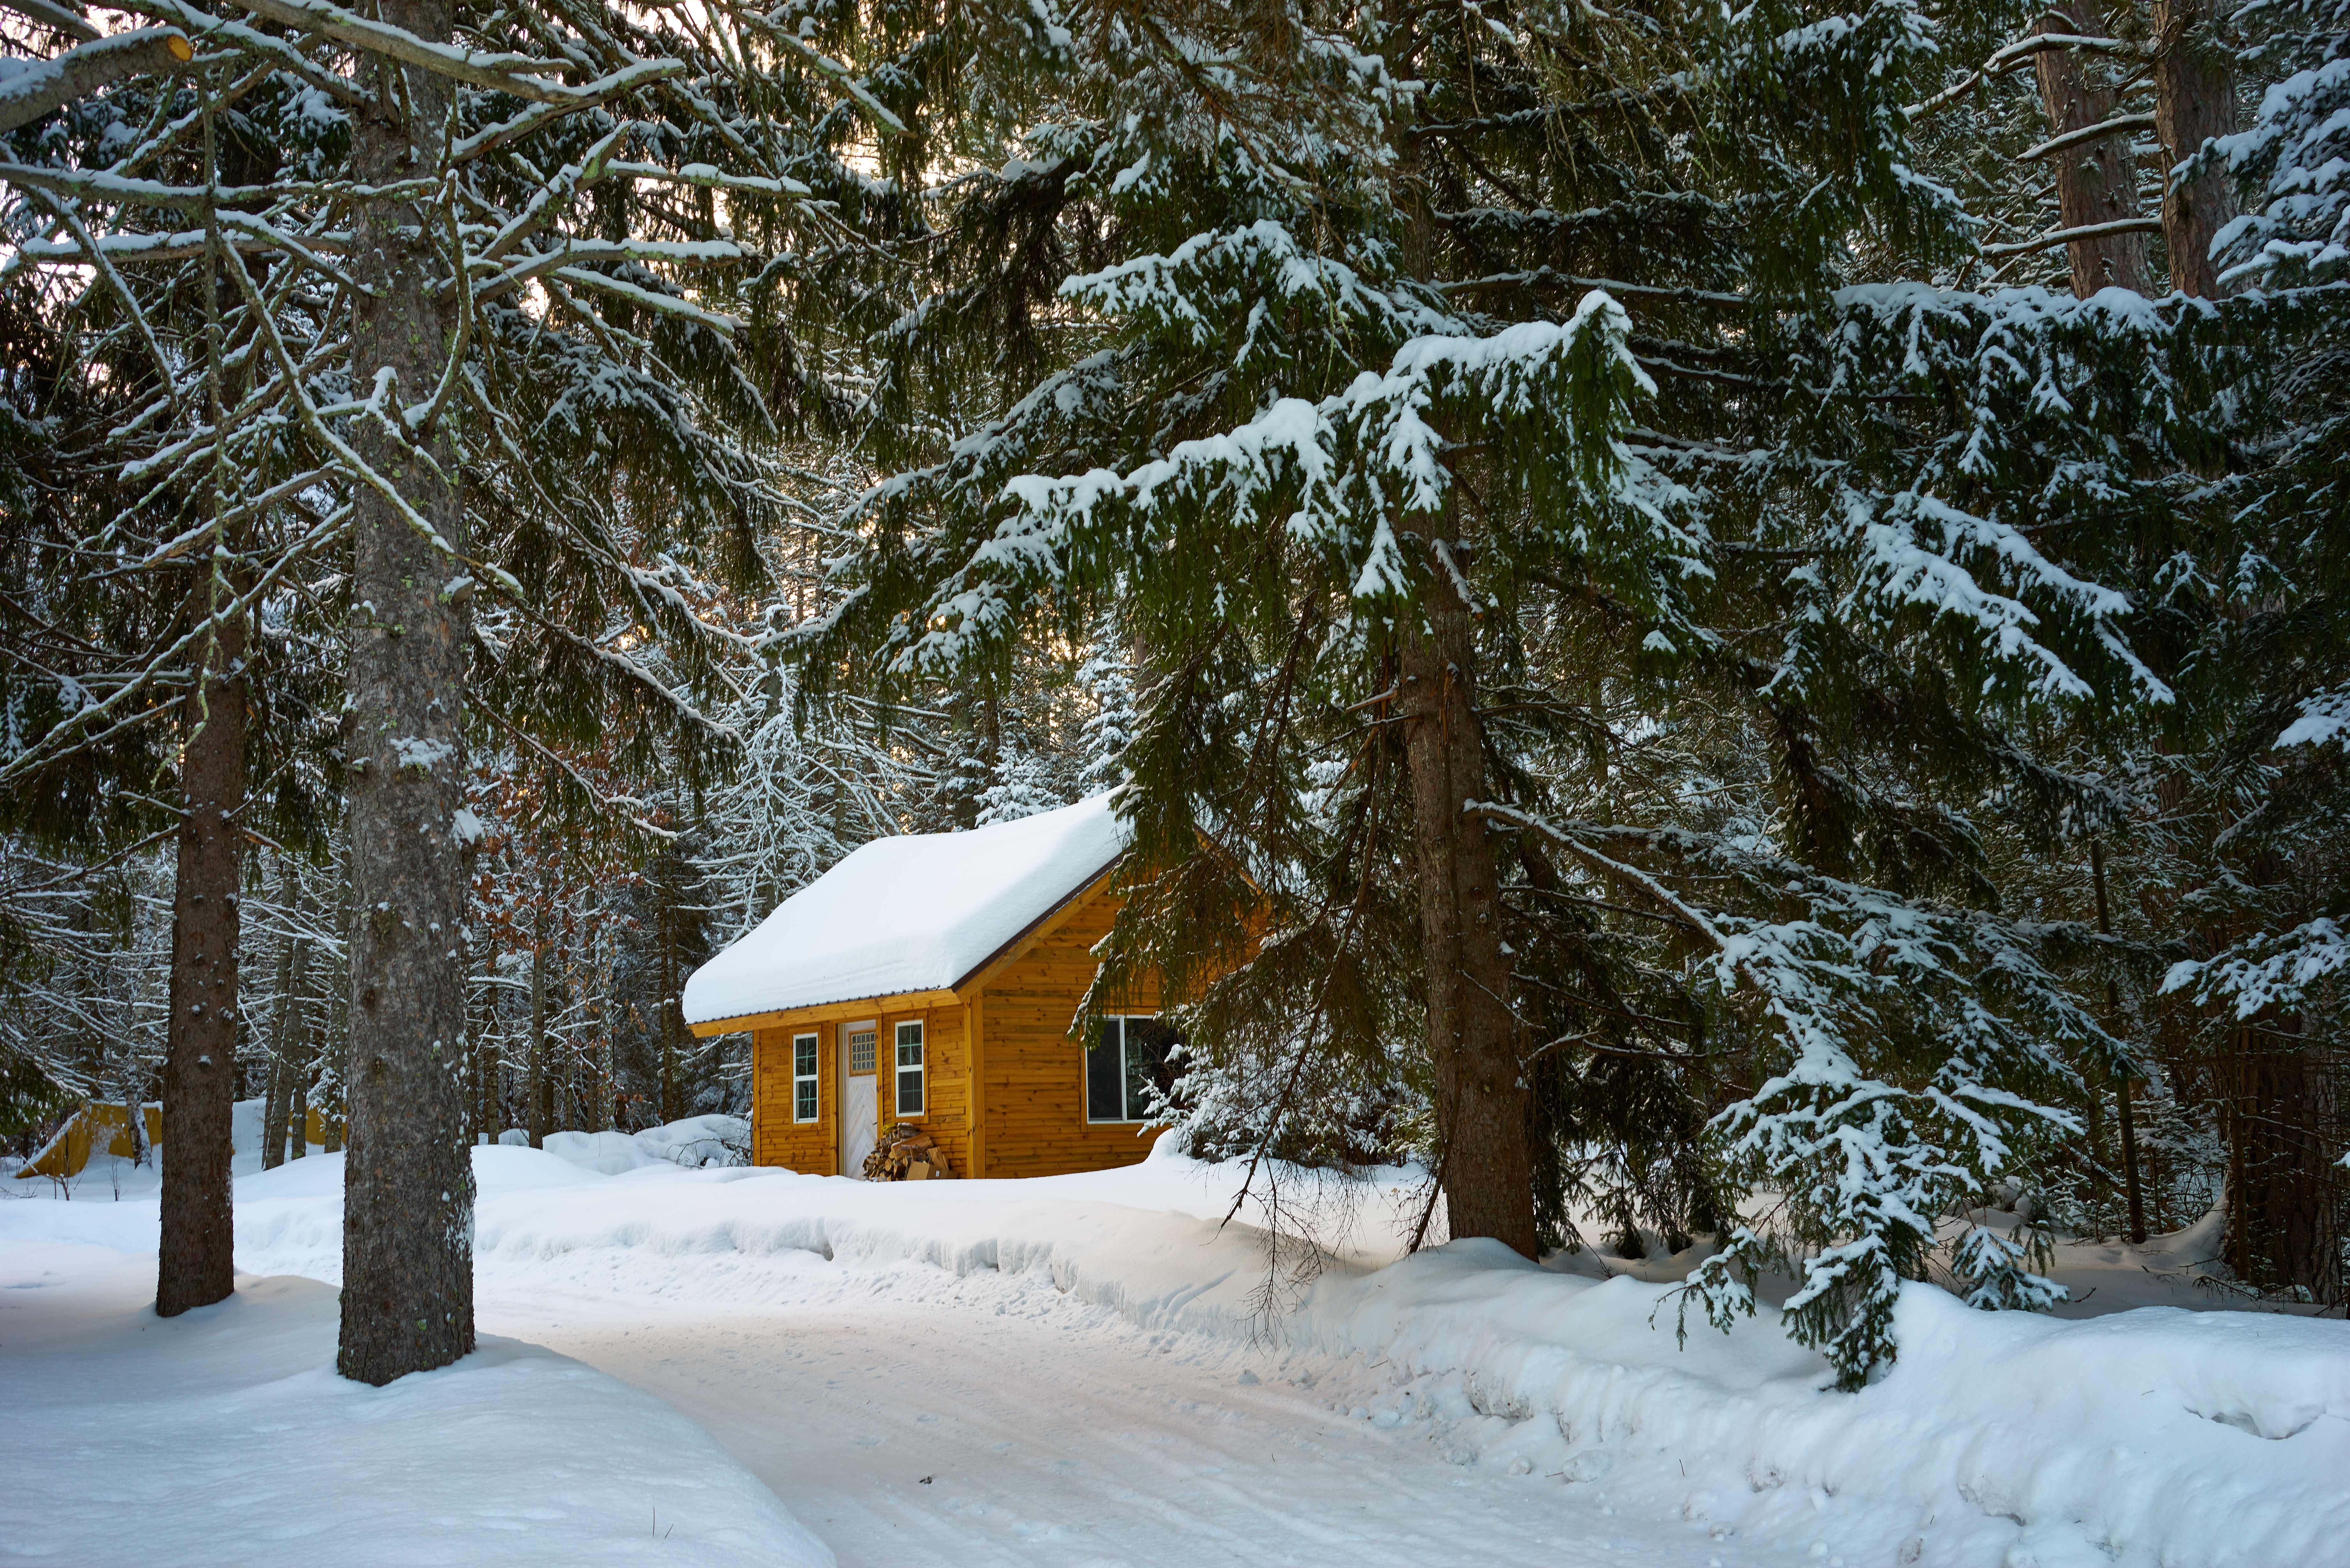 The Best Home Renovations to Do in the Wintertime and The Pros and Cons of Home Remodeling in the Winter